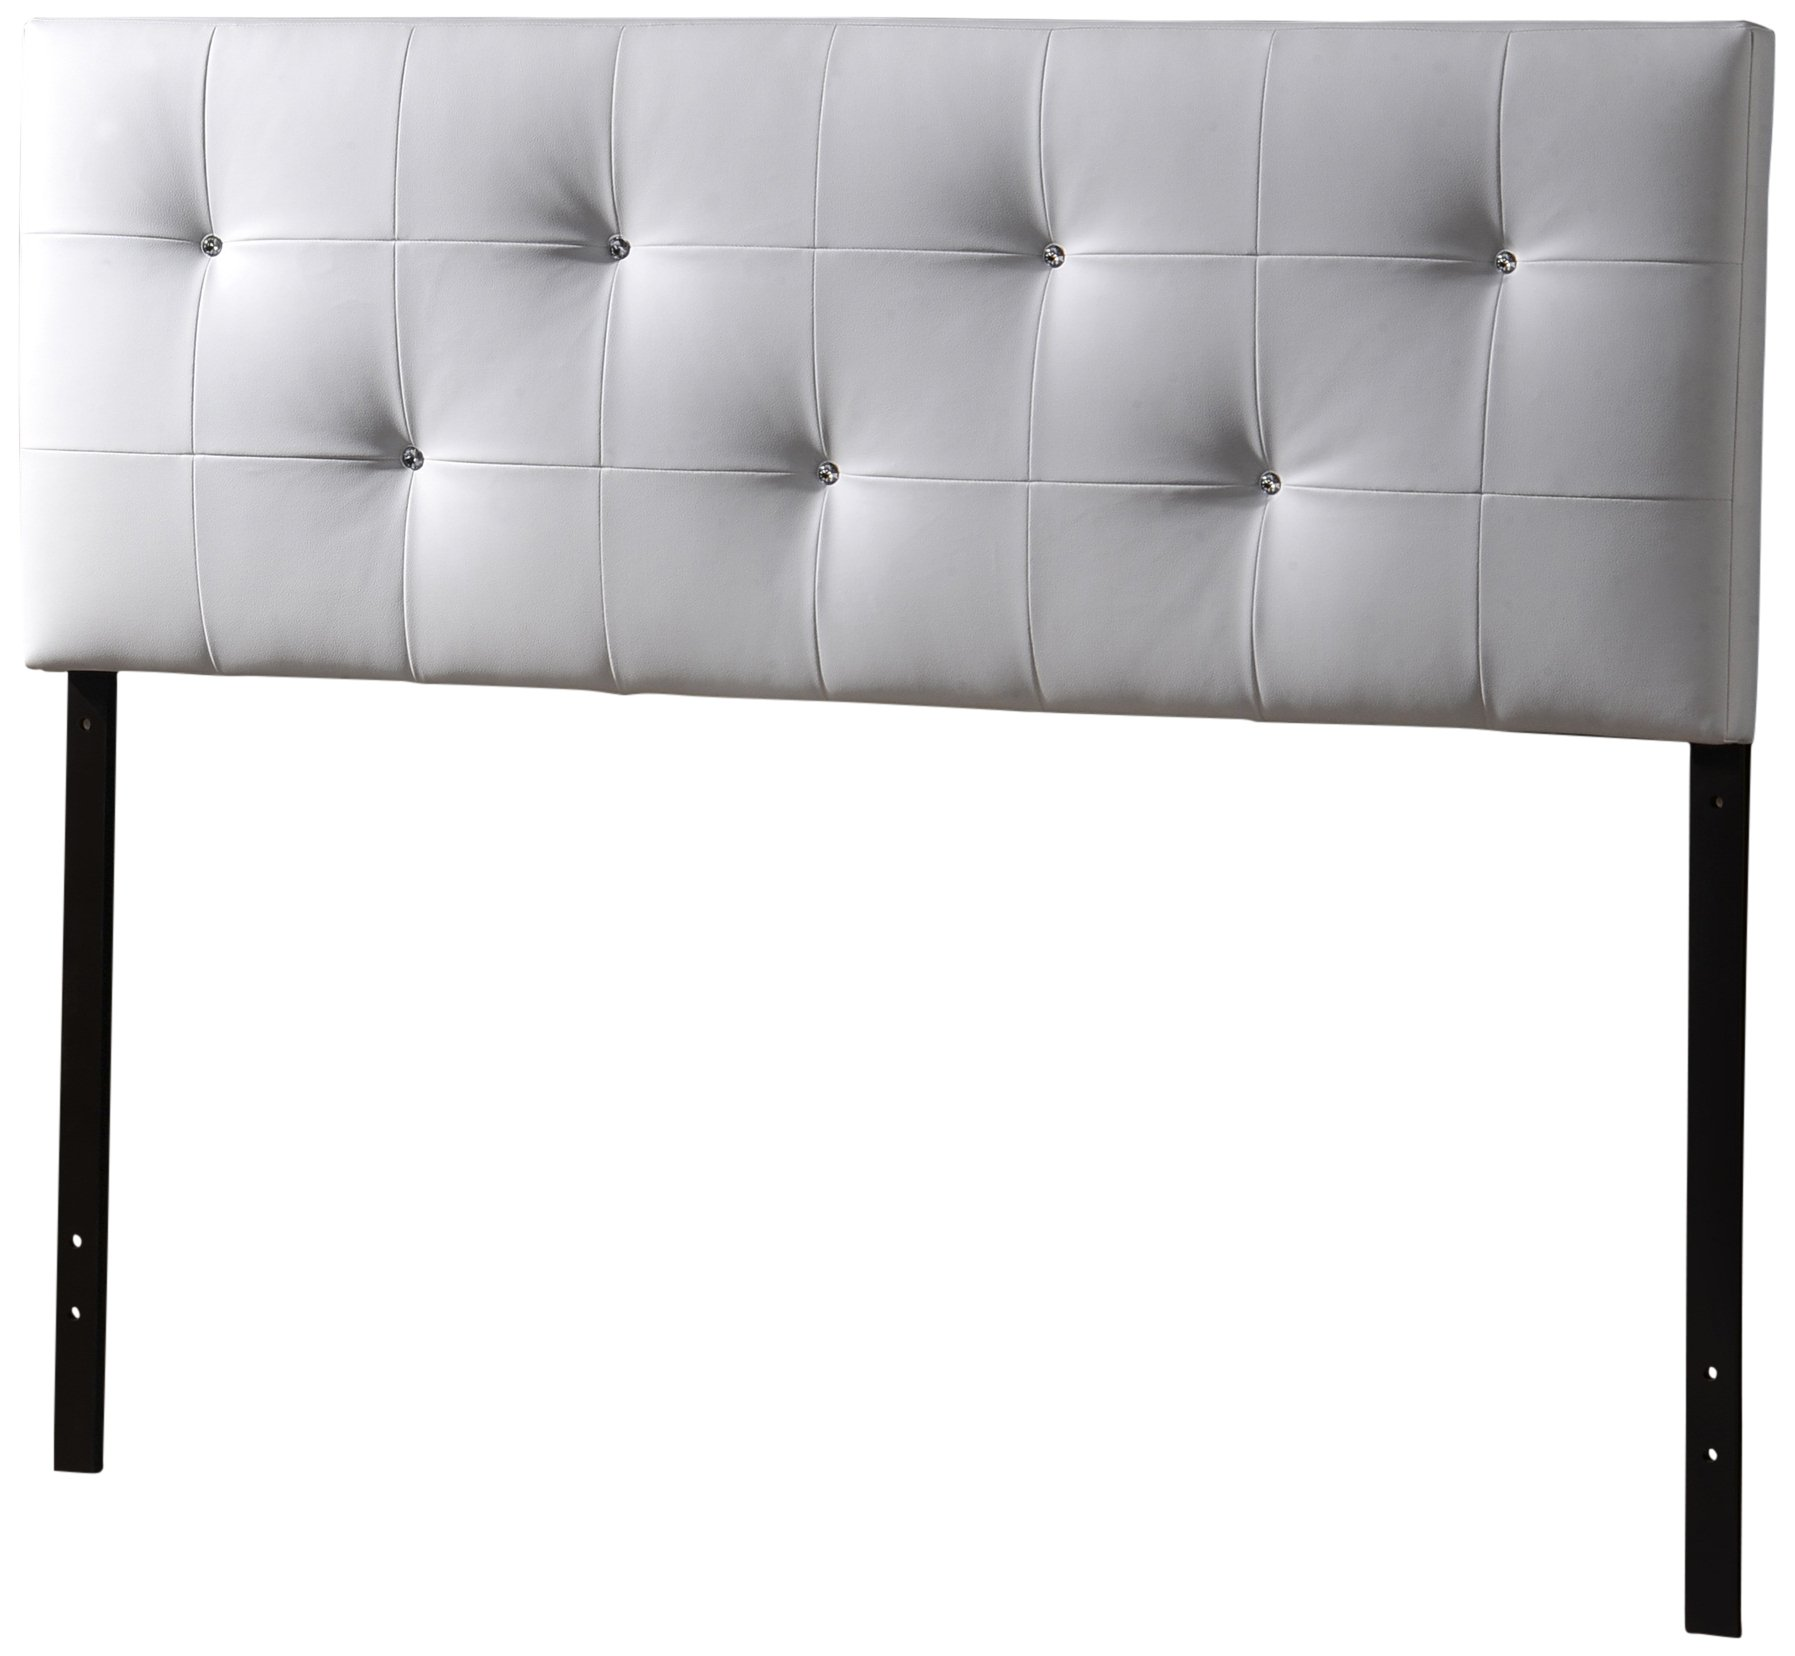 Baxton Studio Wholesale Interiors Dalini Headboard with Faux Crystal Buttons, Queen, White by Baxton Studio